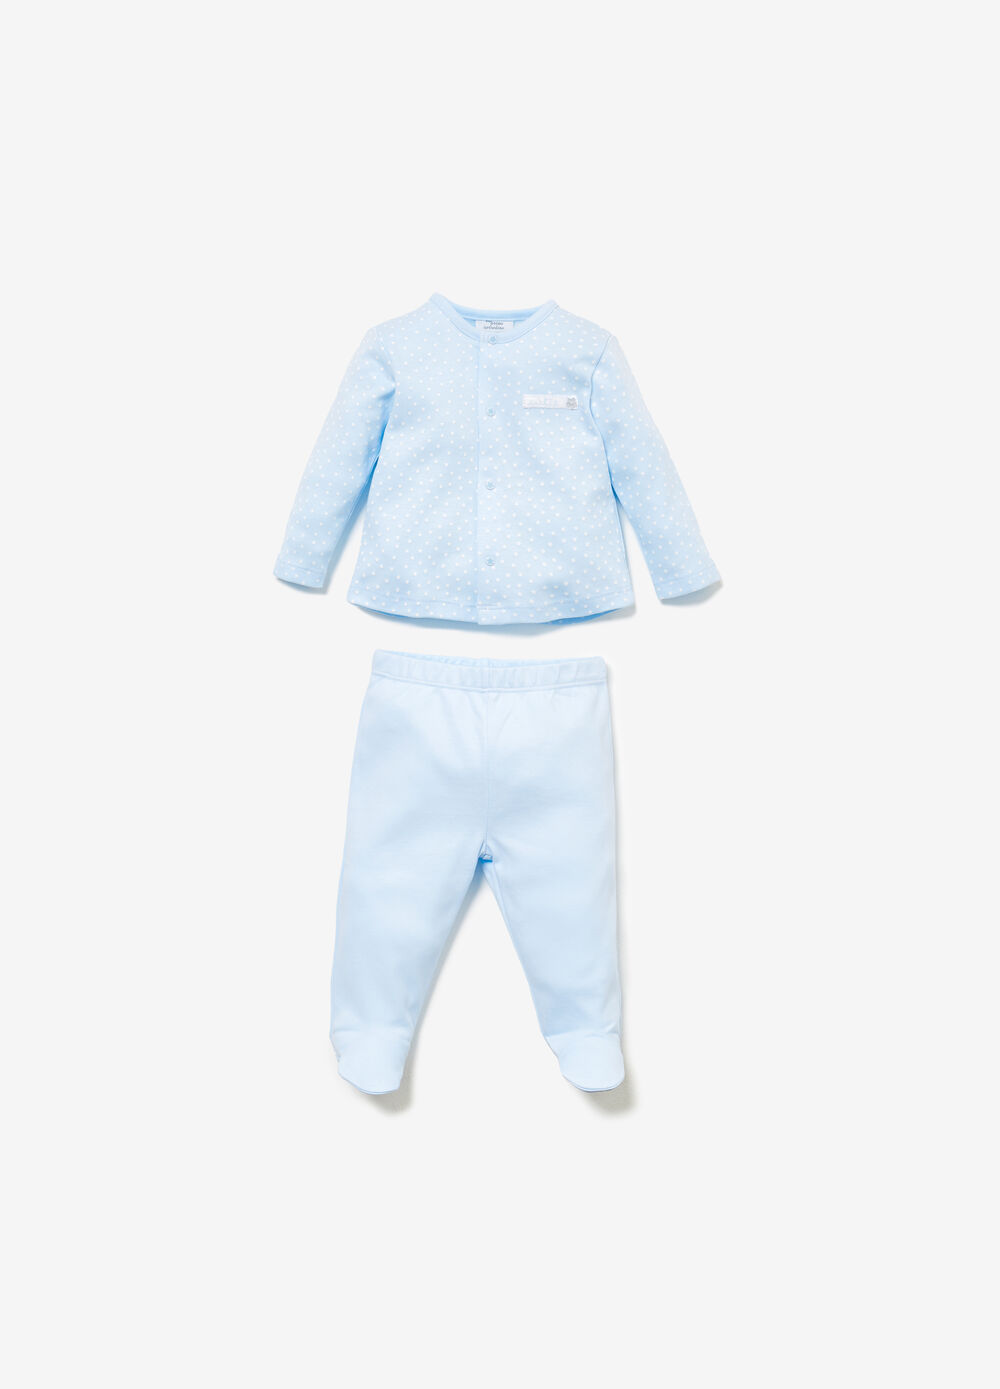 100% cotton outfit with star pattern